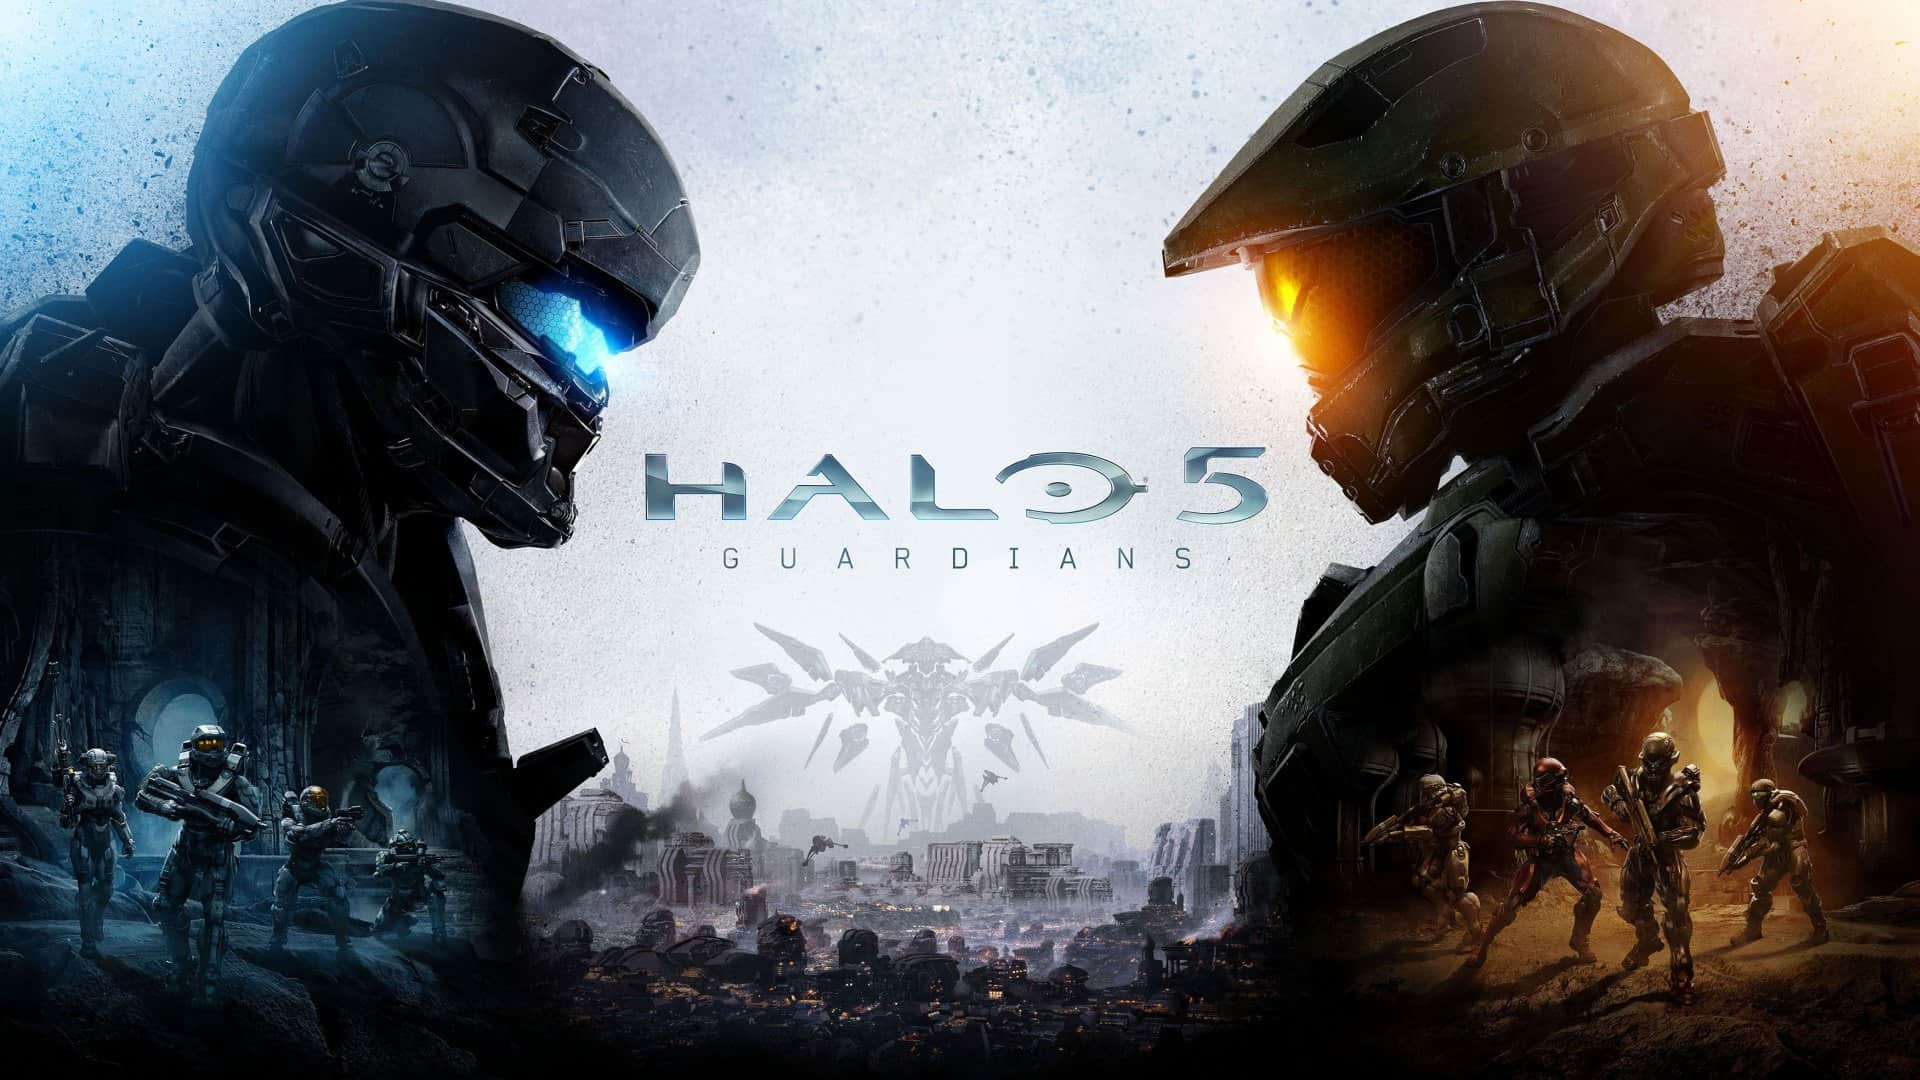 Halo 5 Guardians ESRB Rating Teen